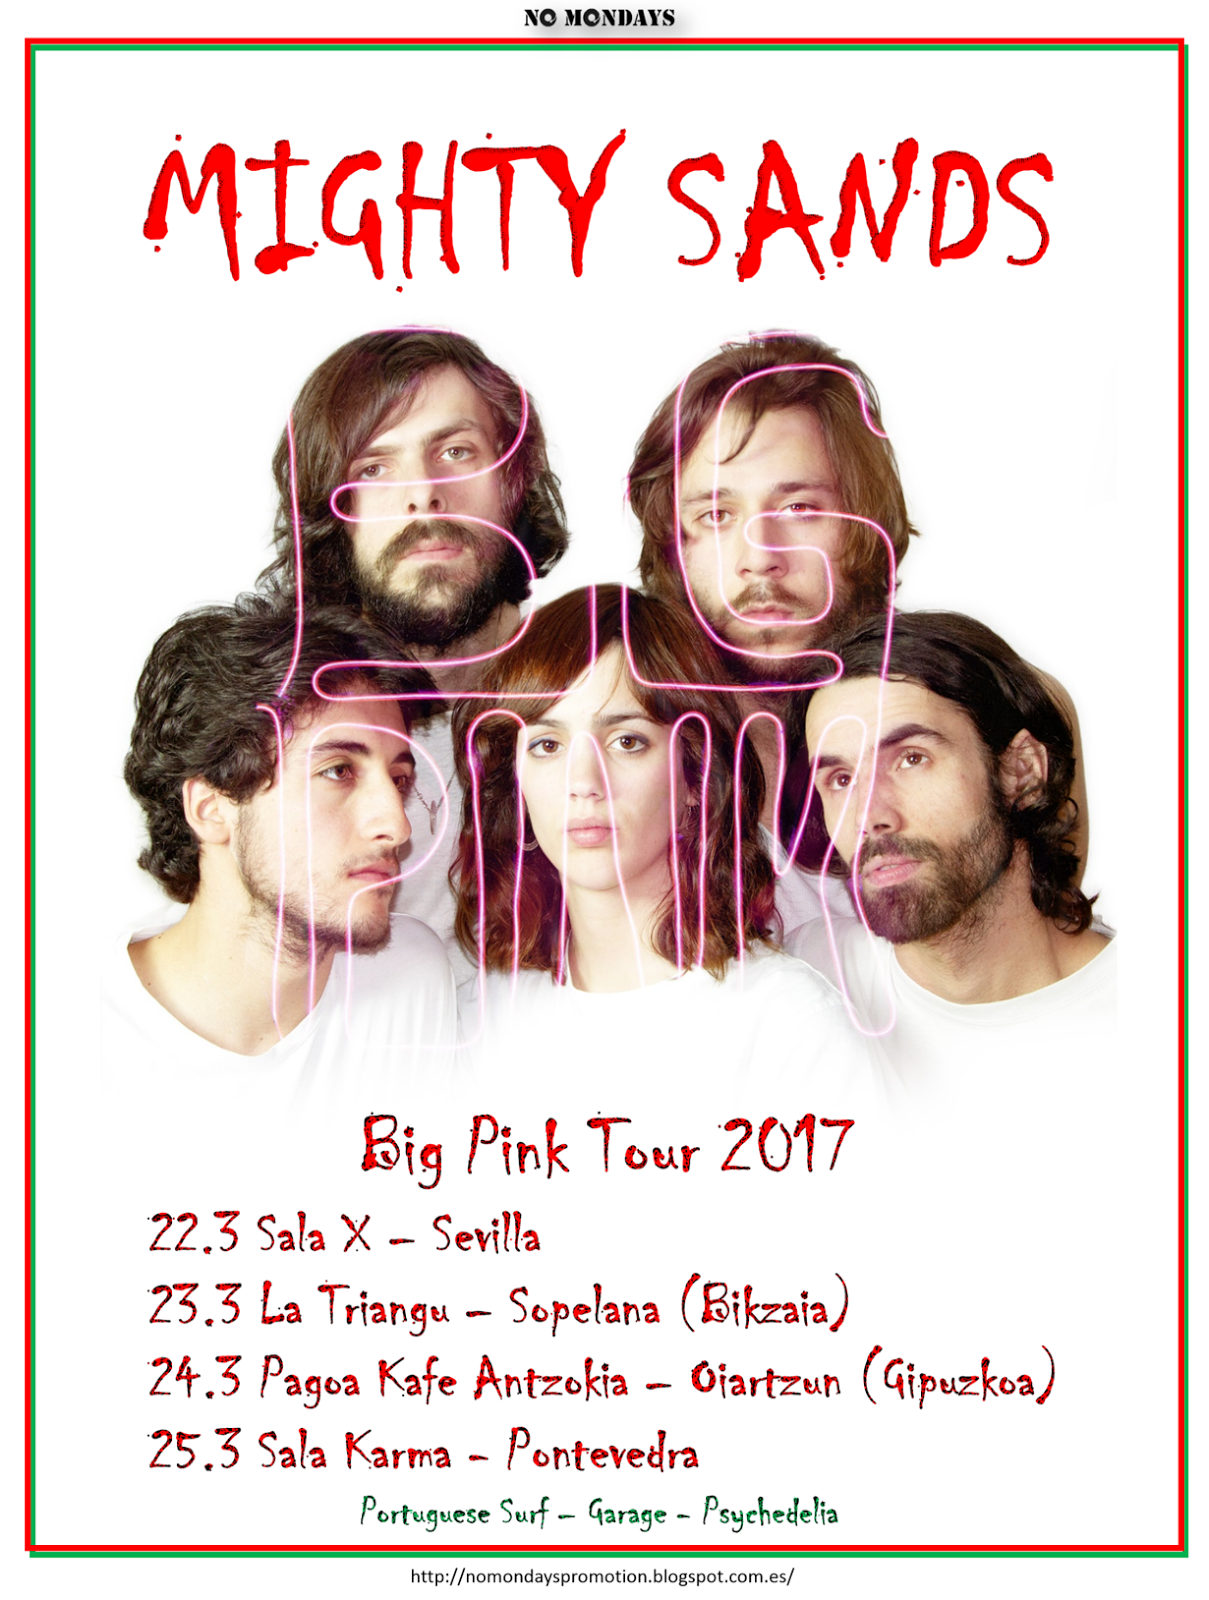 Mighty Sands - Big Pink Tour 2017